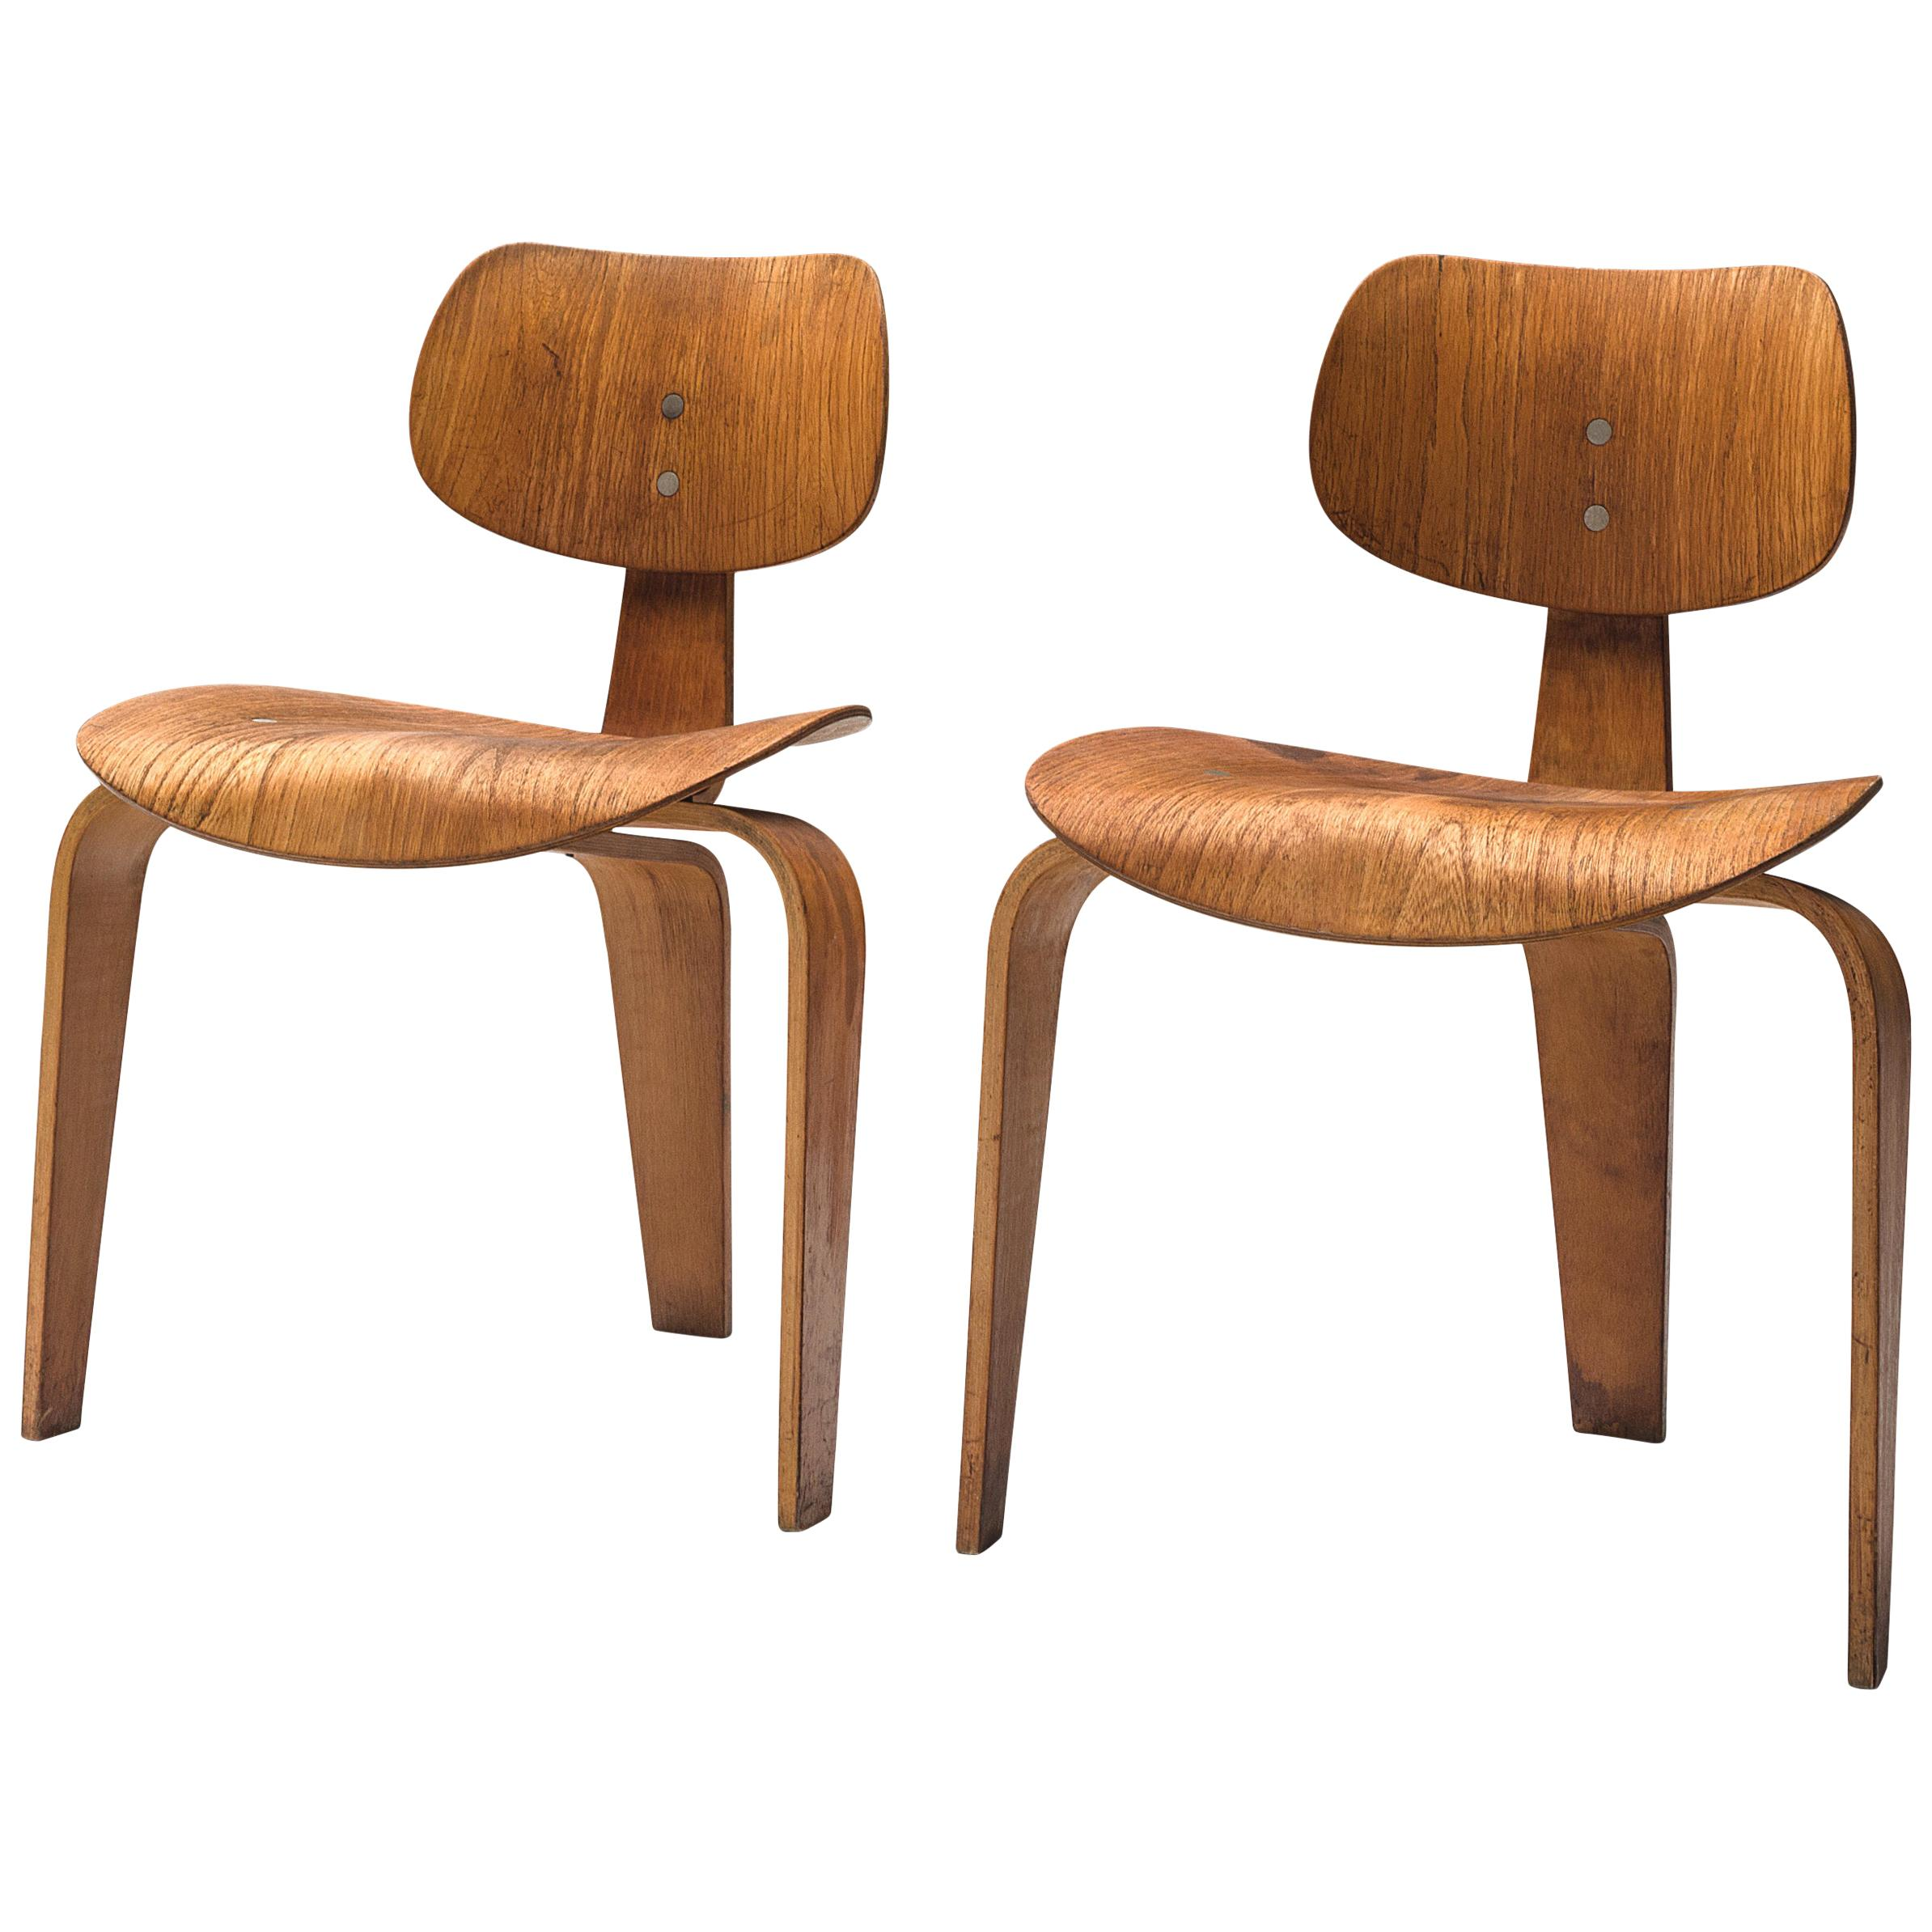 Egon Eiermann for Wilde + Spieth Pair of SE 42 Chairs in Plywood